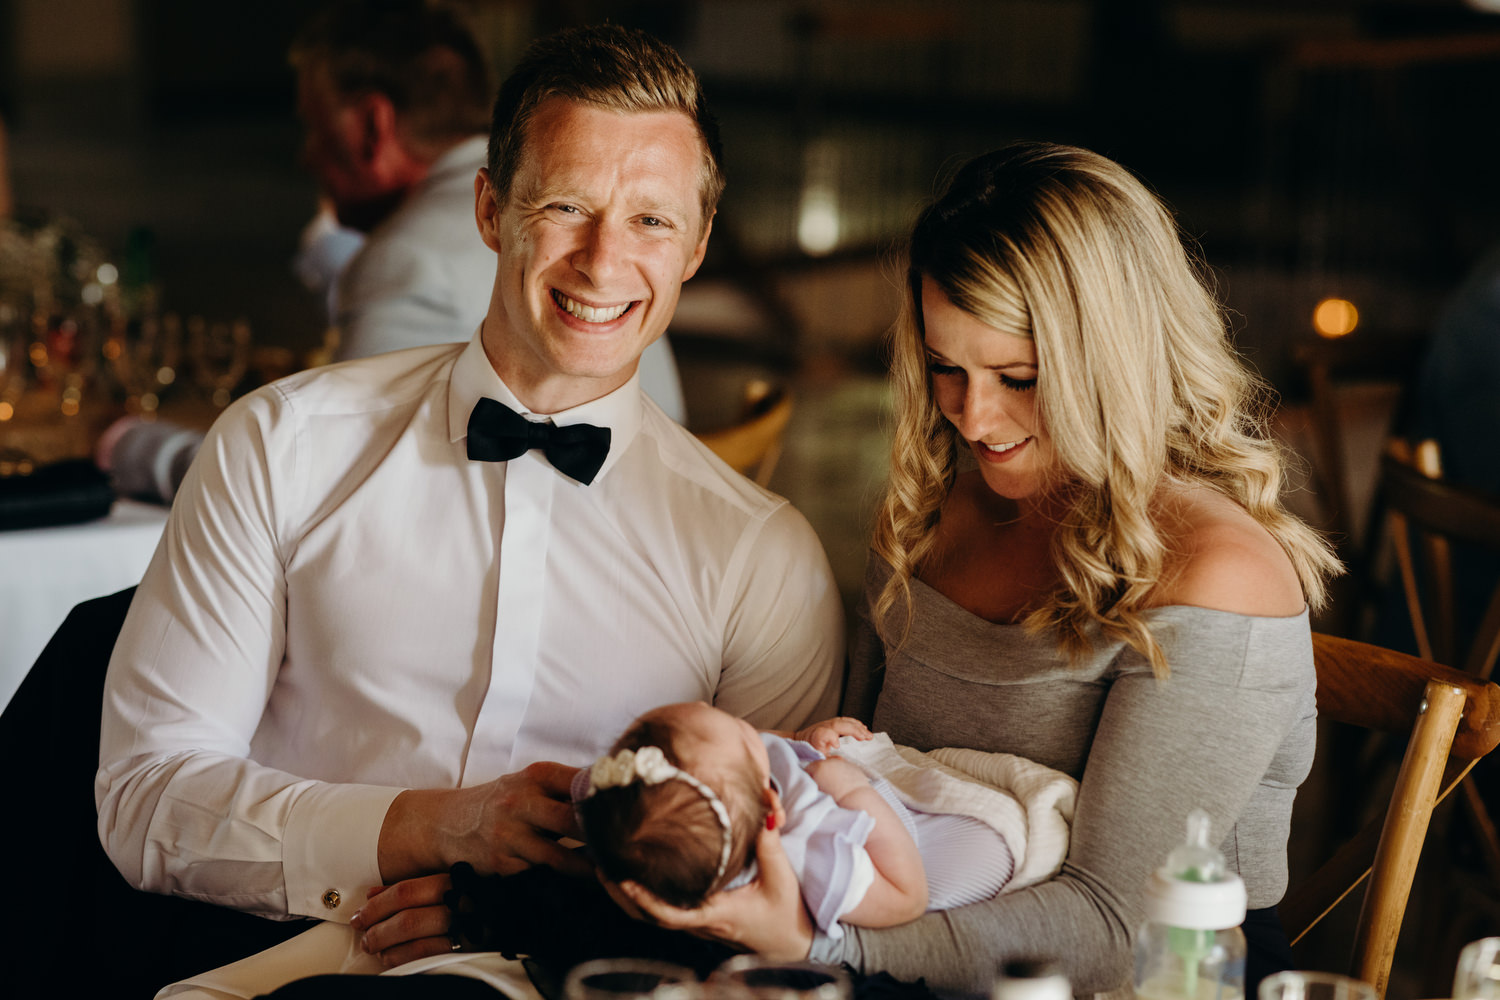 guests hold baby at wedding